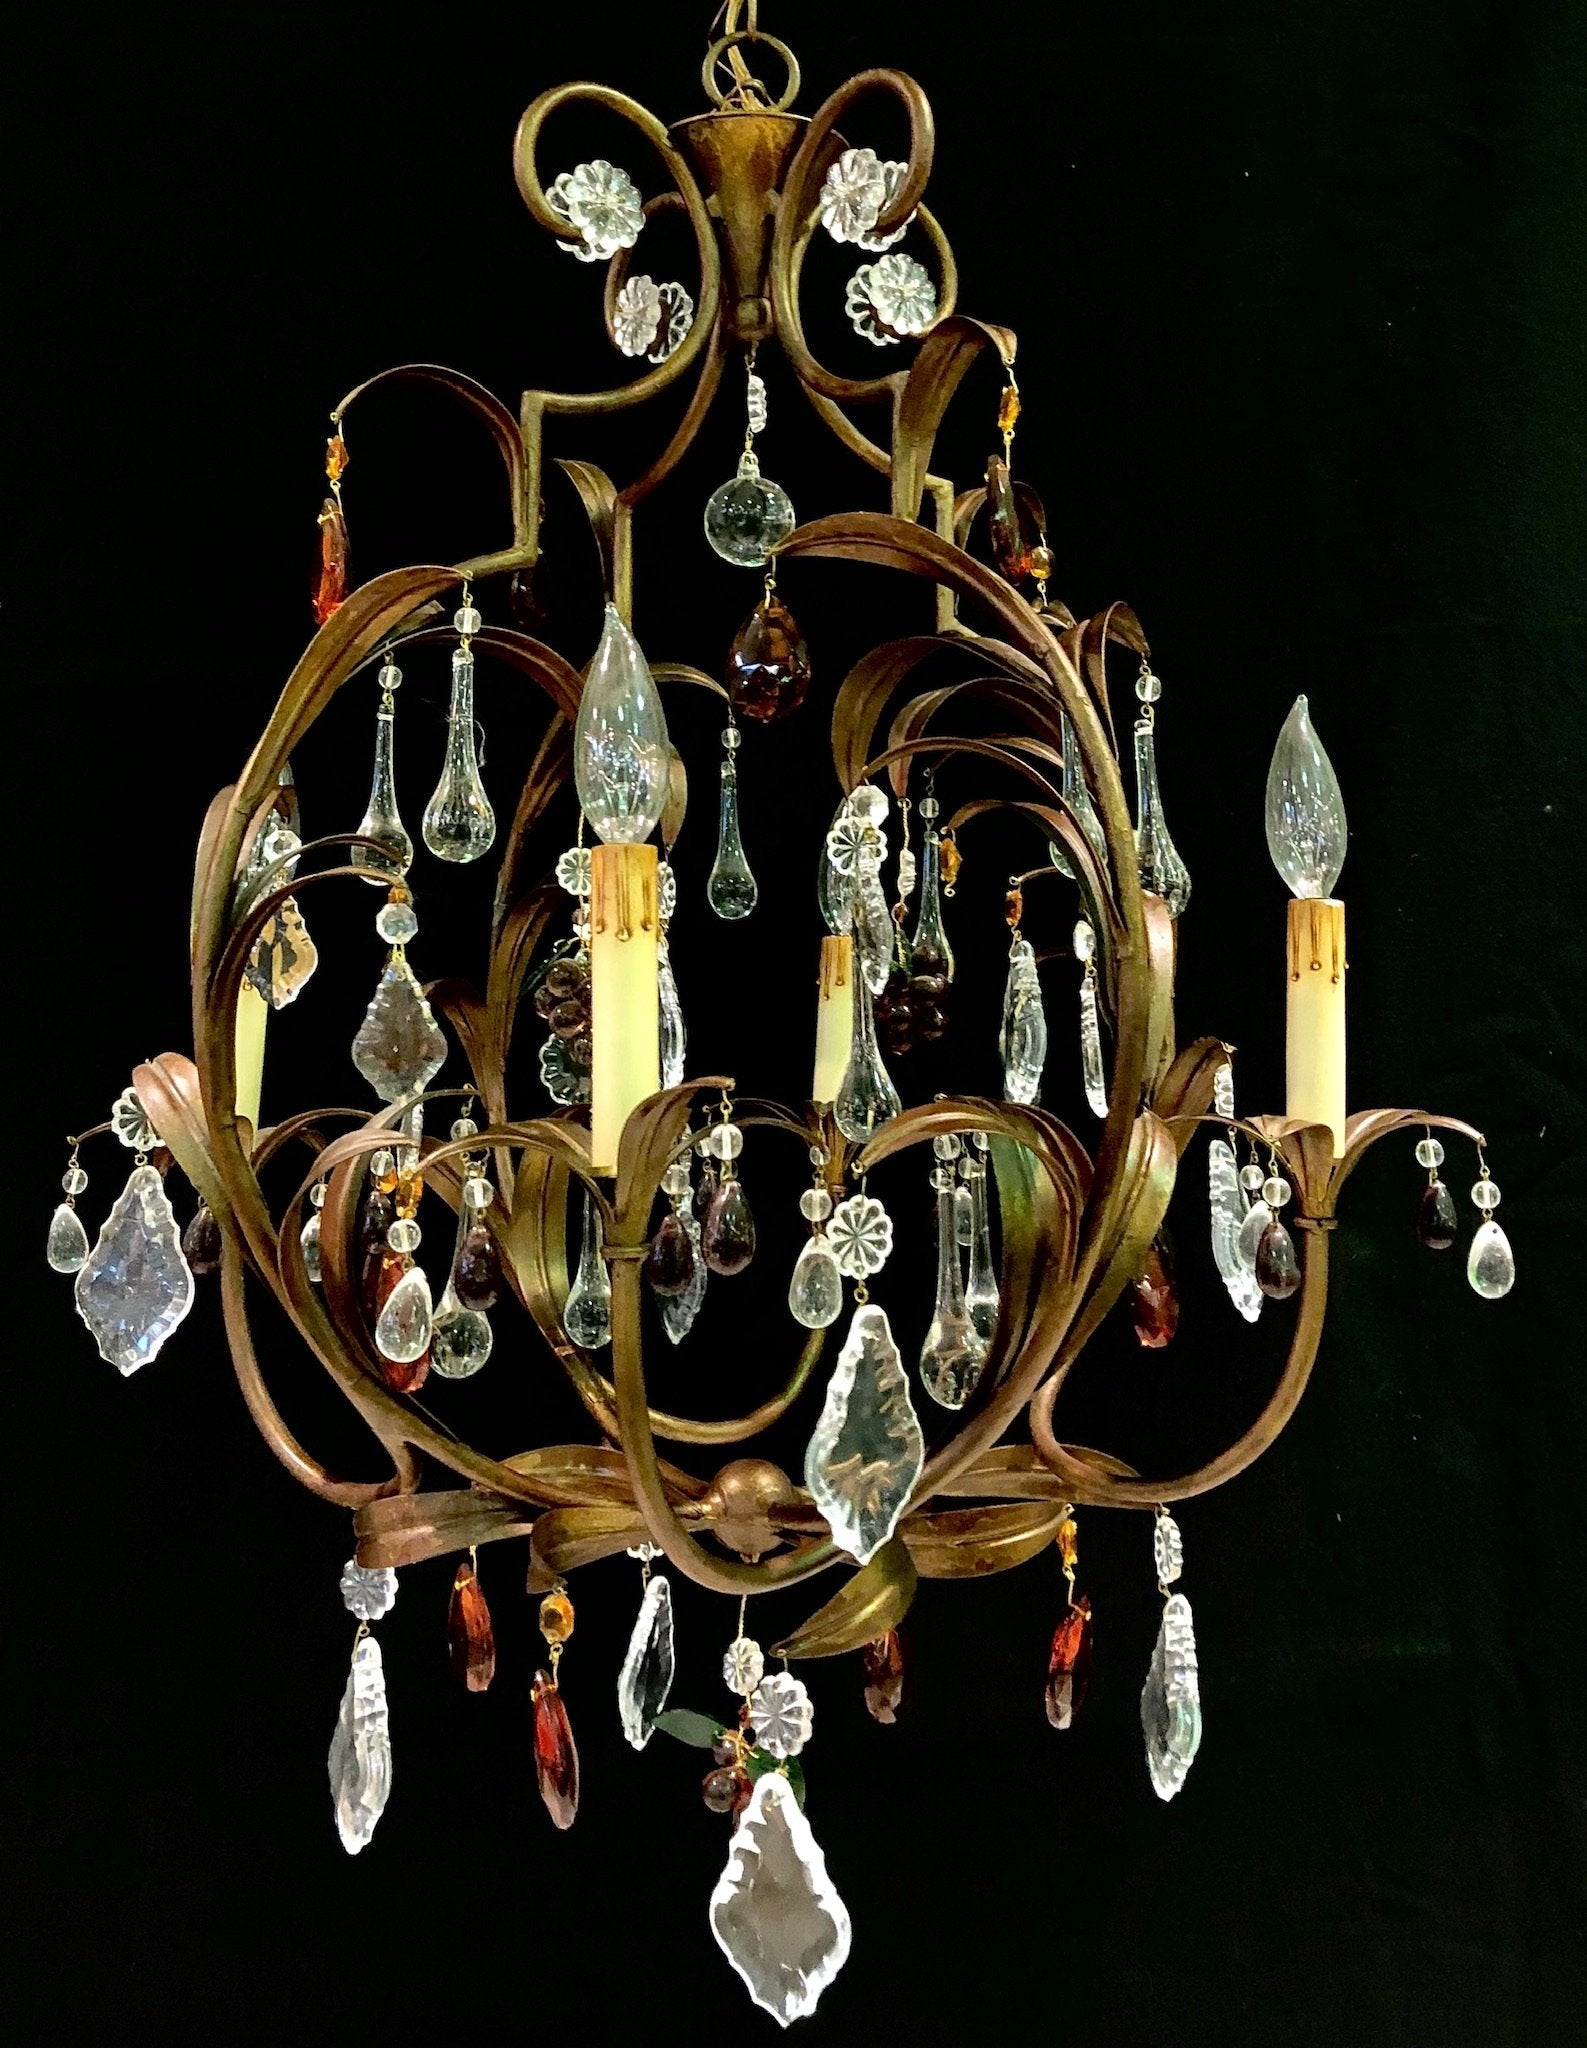 'Gold' Patinated Steel & Coloured Crystal 4 Arm Chandelier